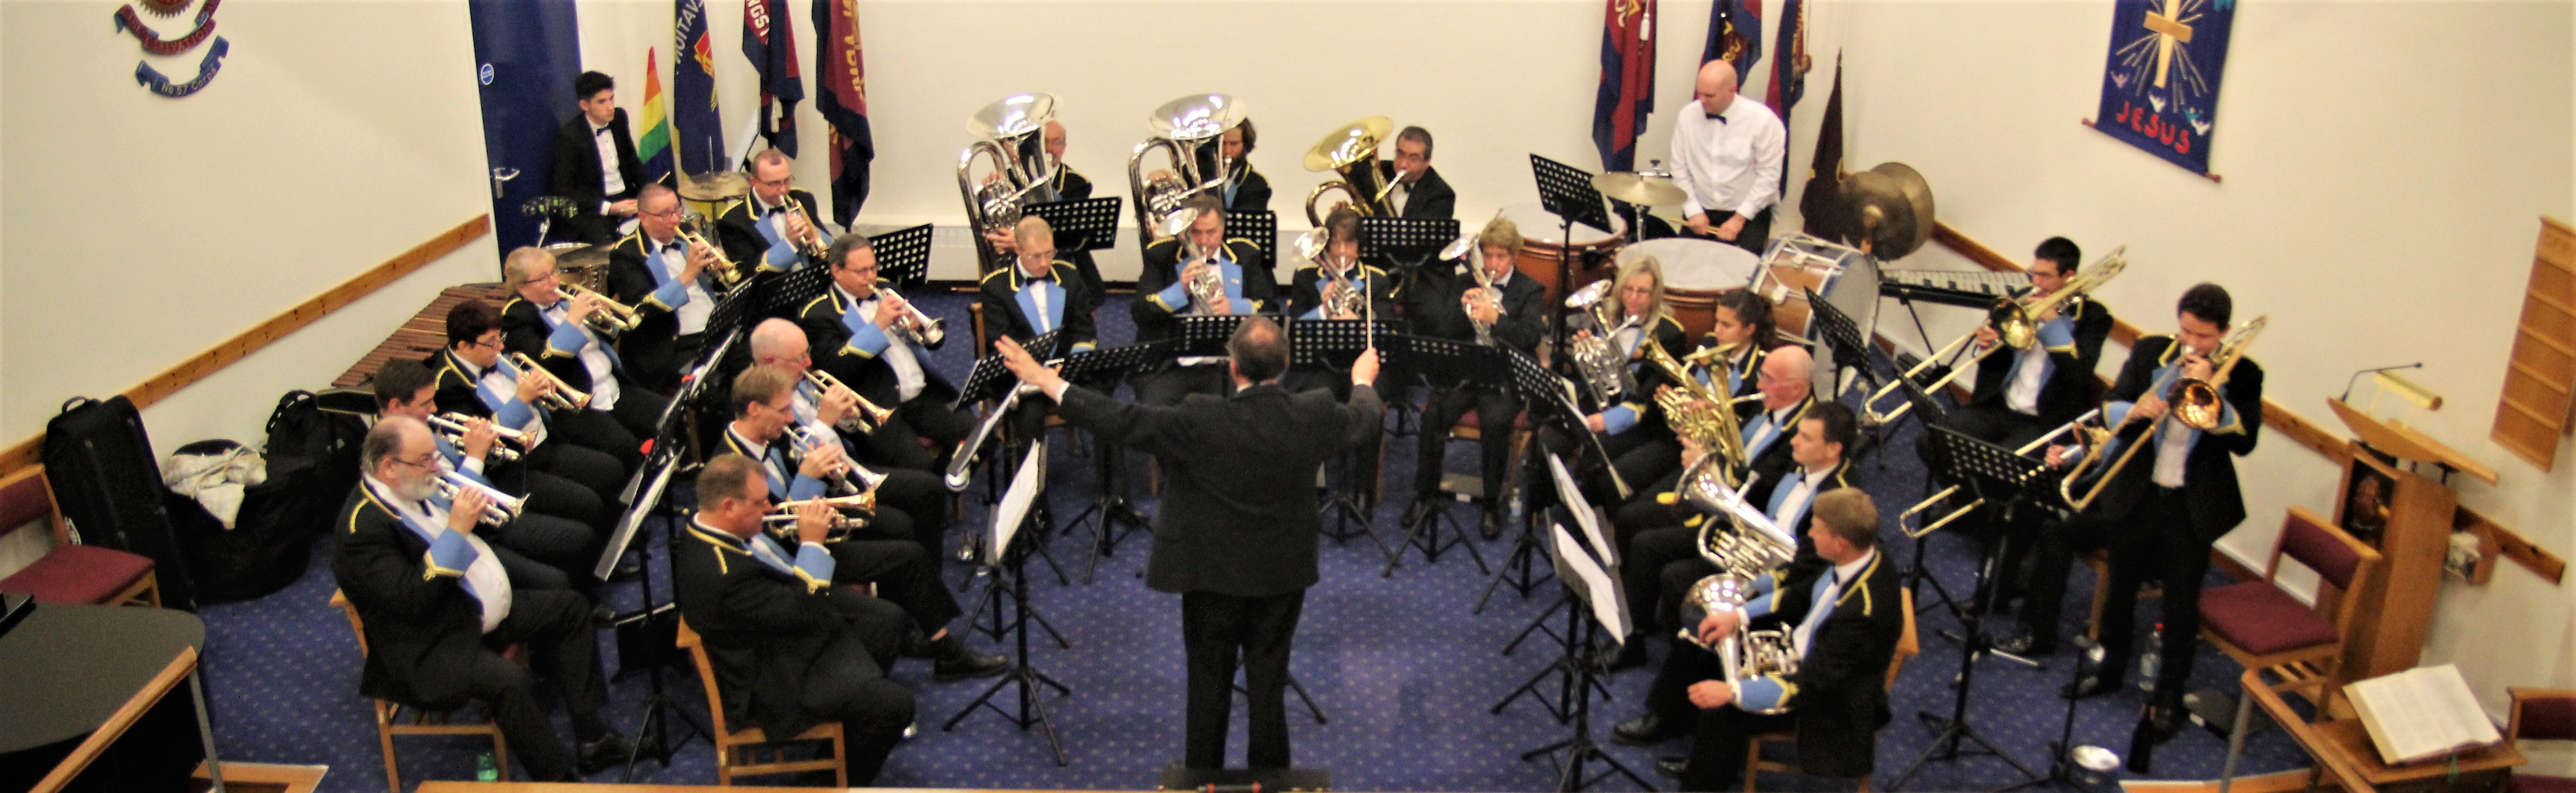 Poole Salvation Army Concert